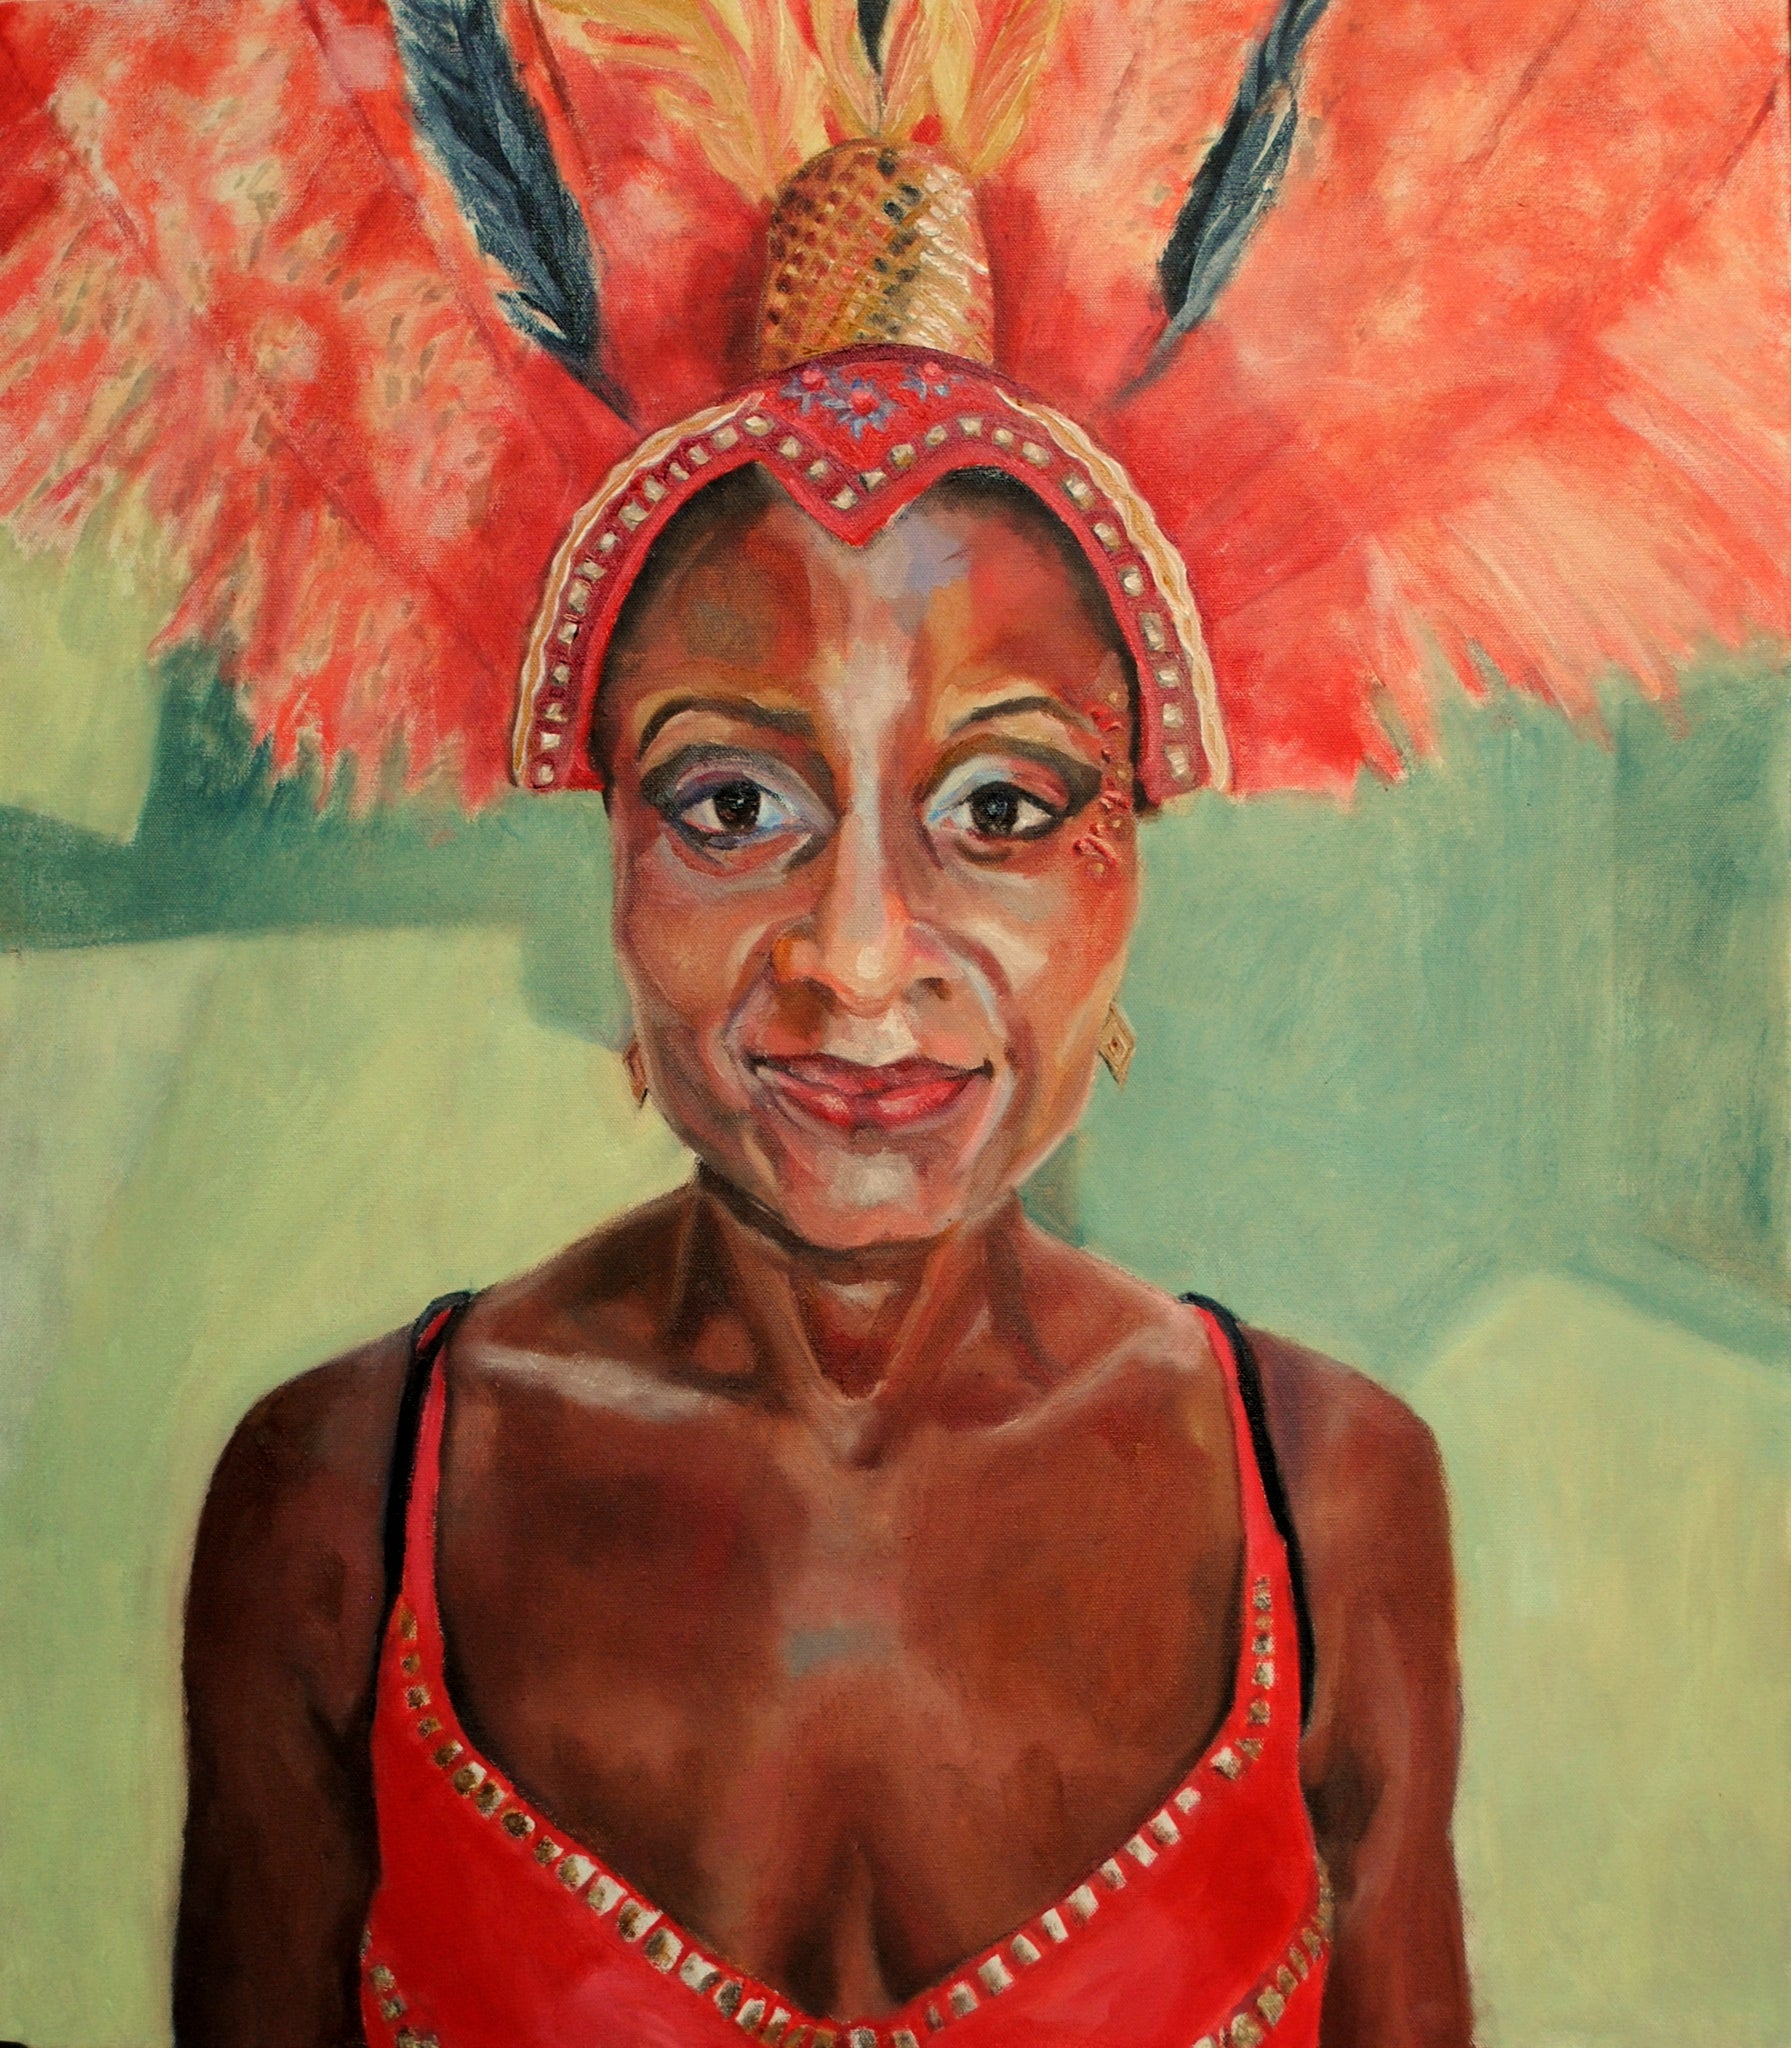 Jumping up! portrait of a Notting Hill Carnival participant by British figurative artist Stella Tooth